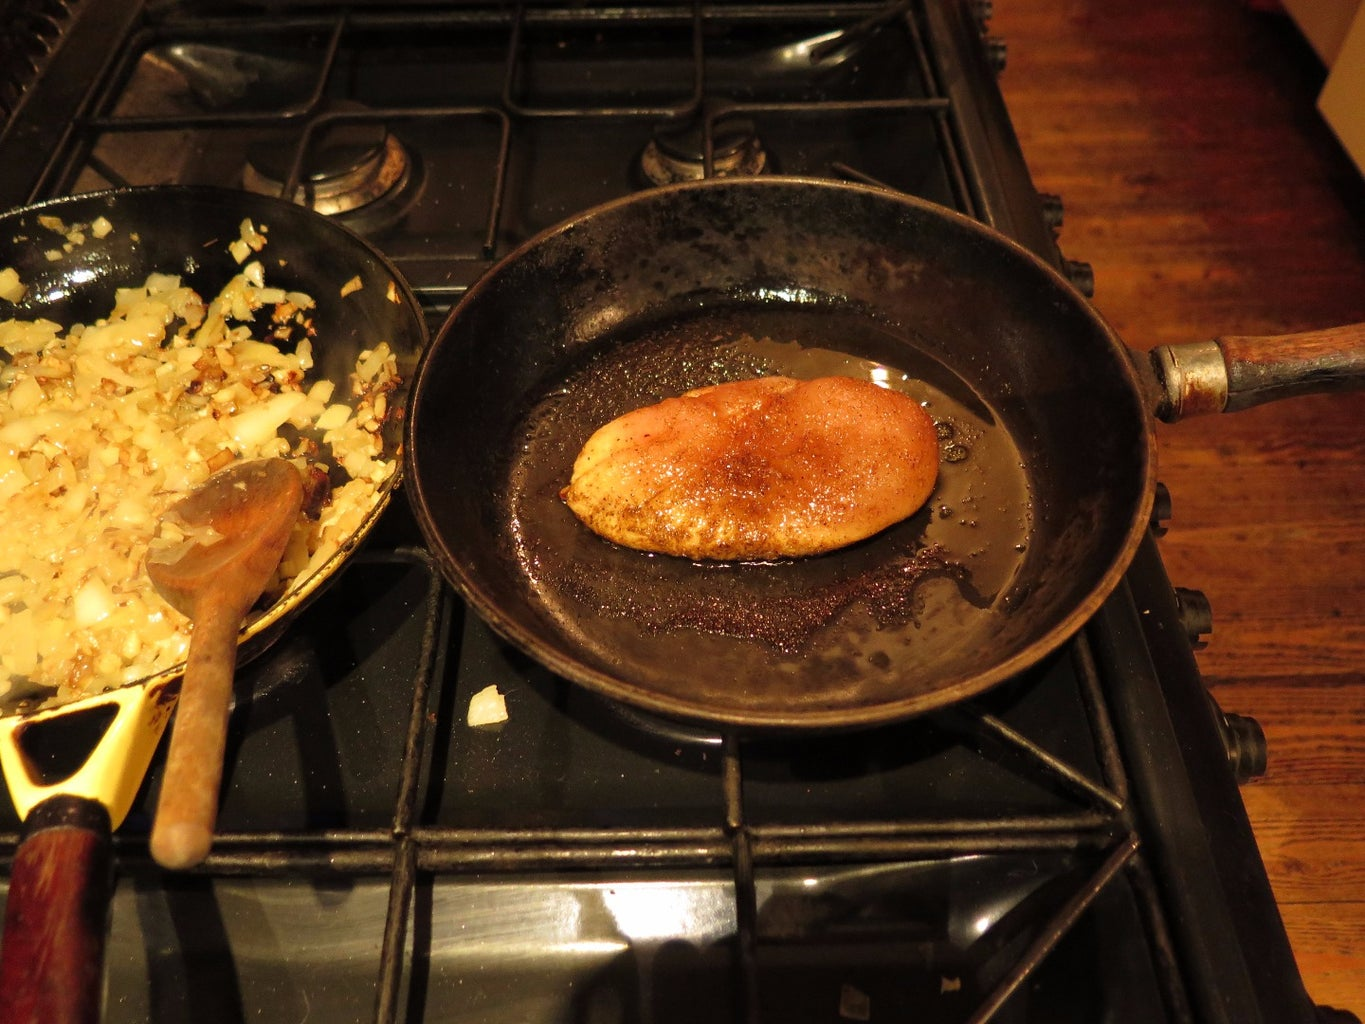 Cooking the Chicken.